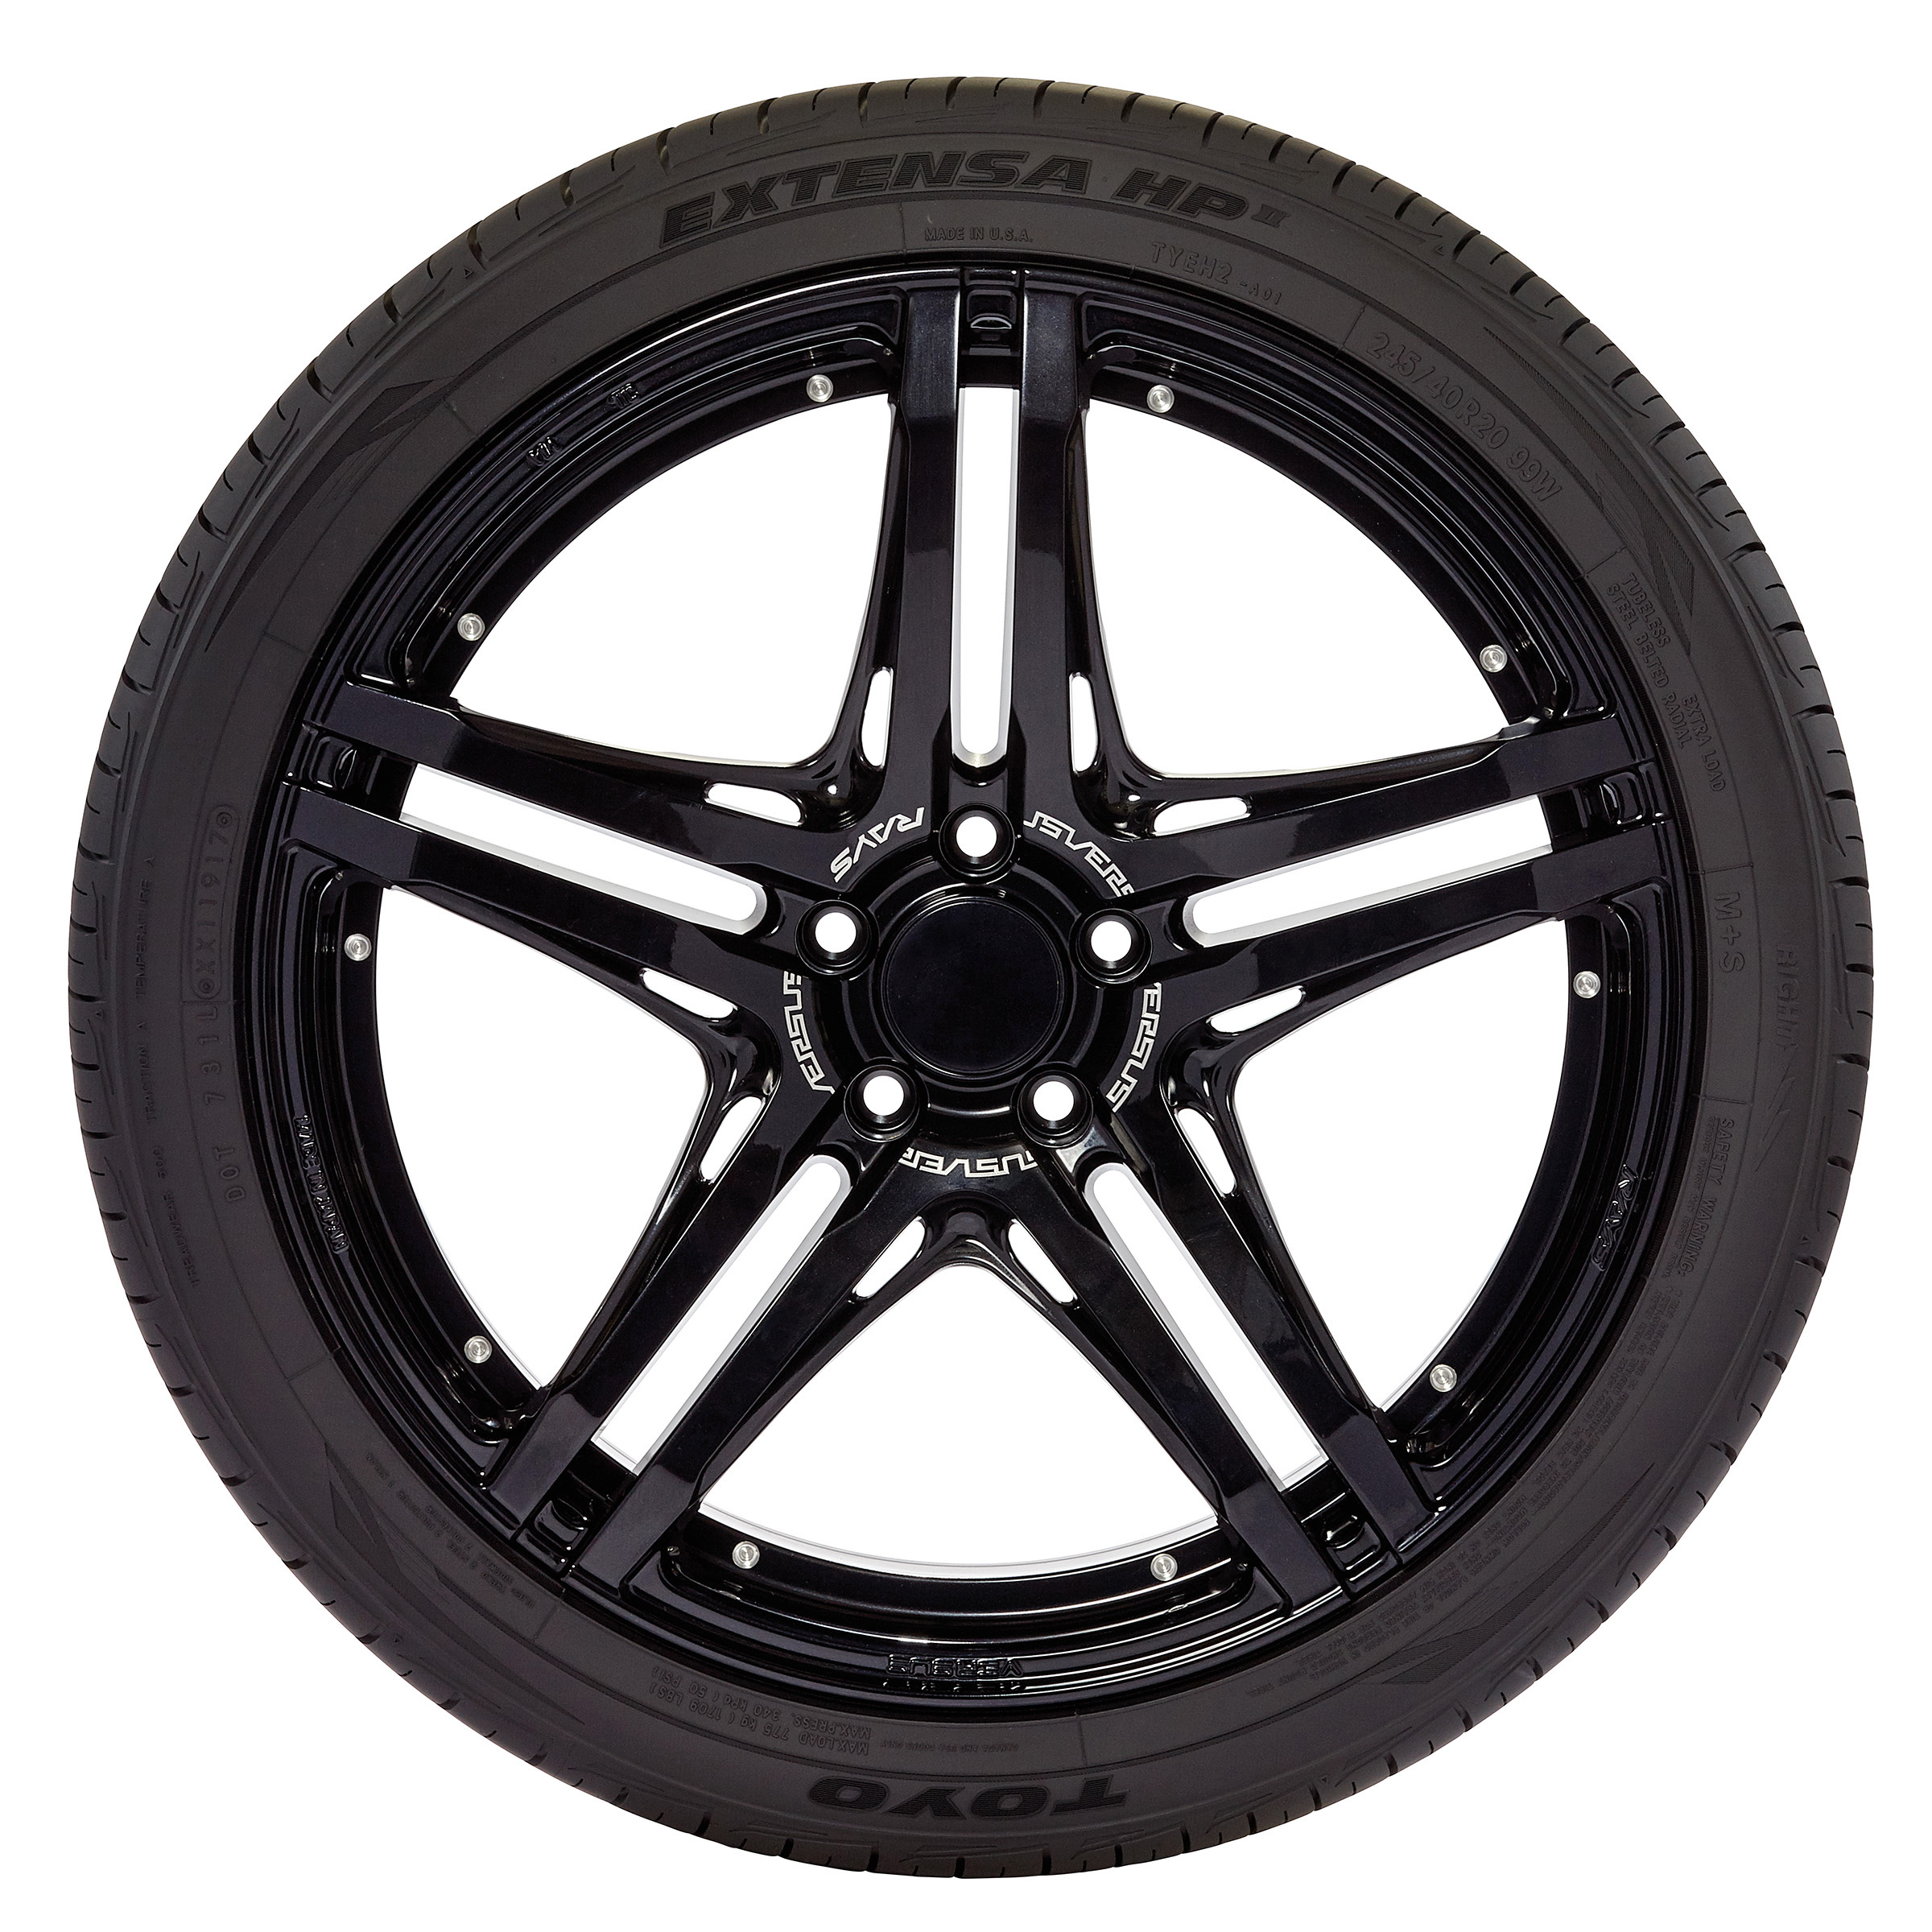 Toyo Tires introduces the All New Toyo Extensa HP II